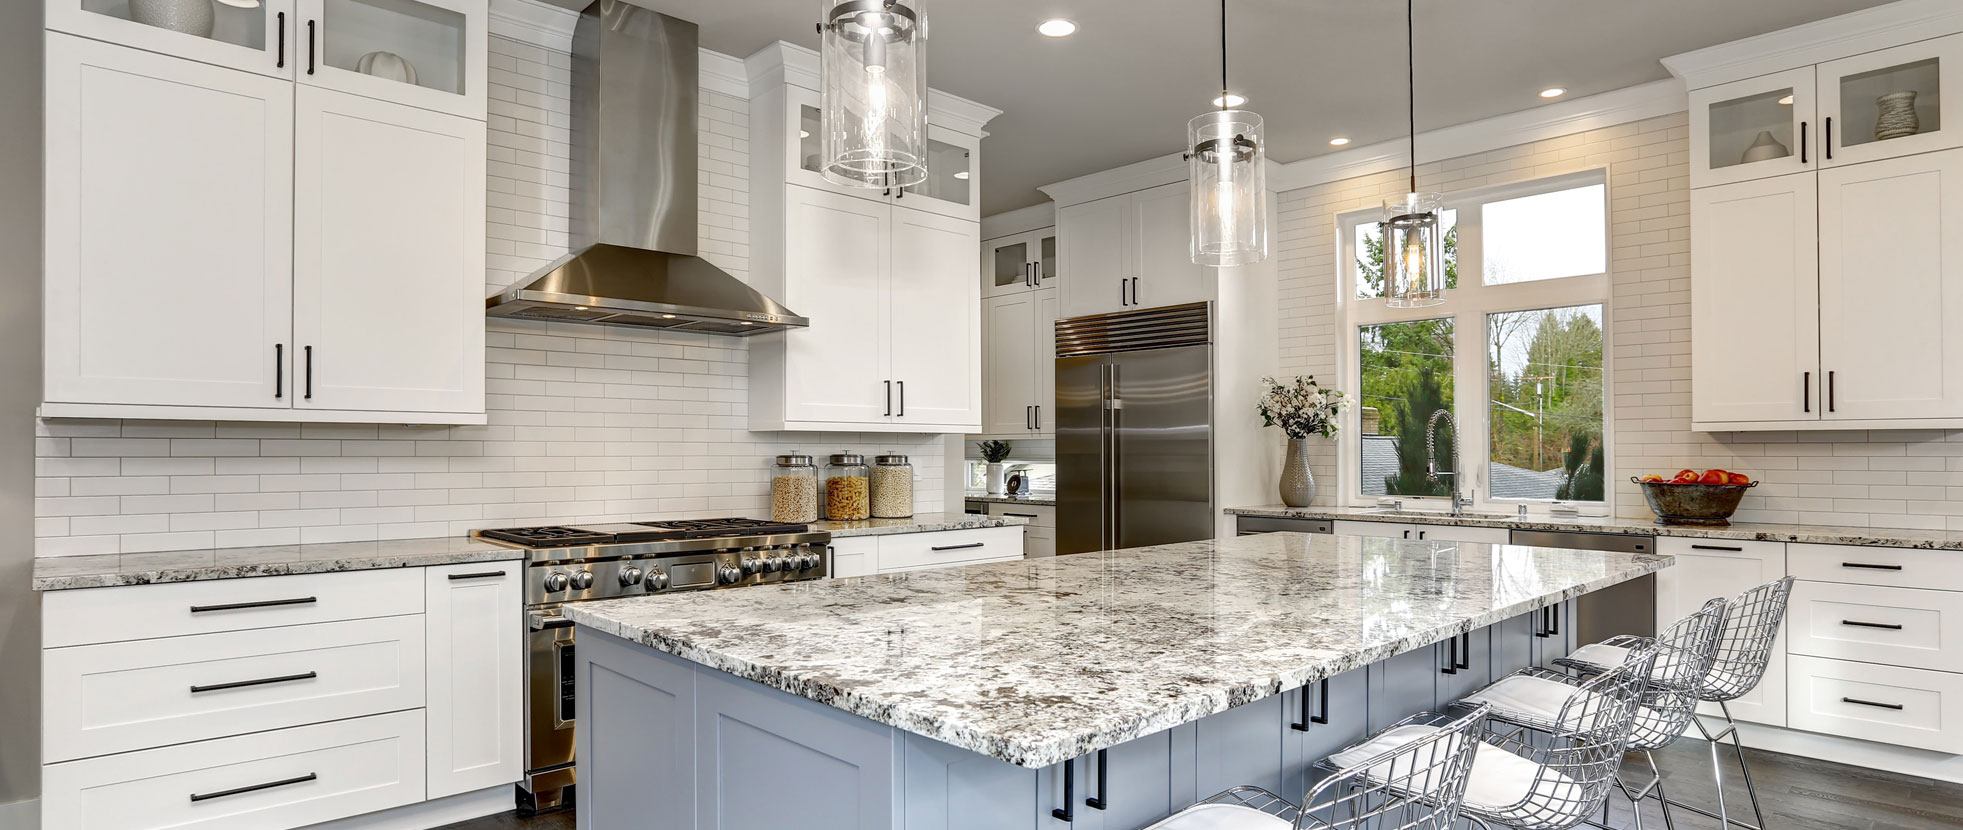 Haggerty Son S Llc Kitchen Remodeling Custom Cabinets